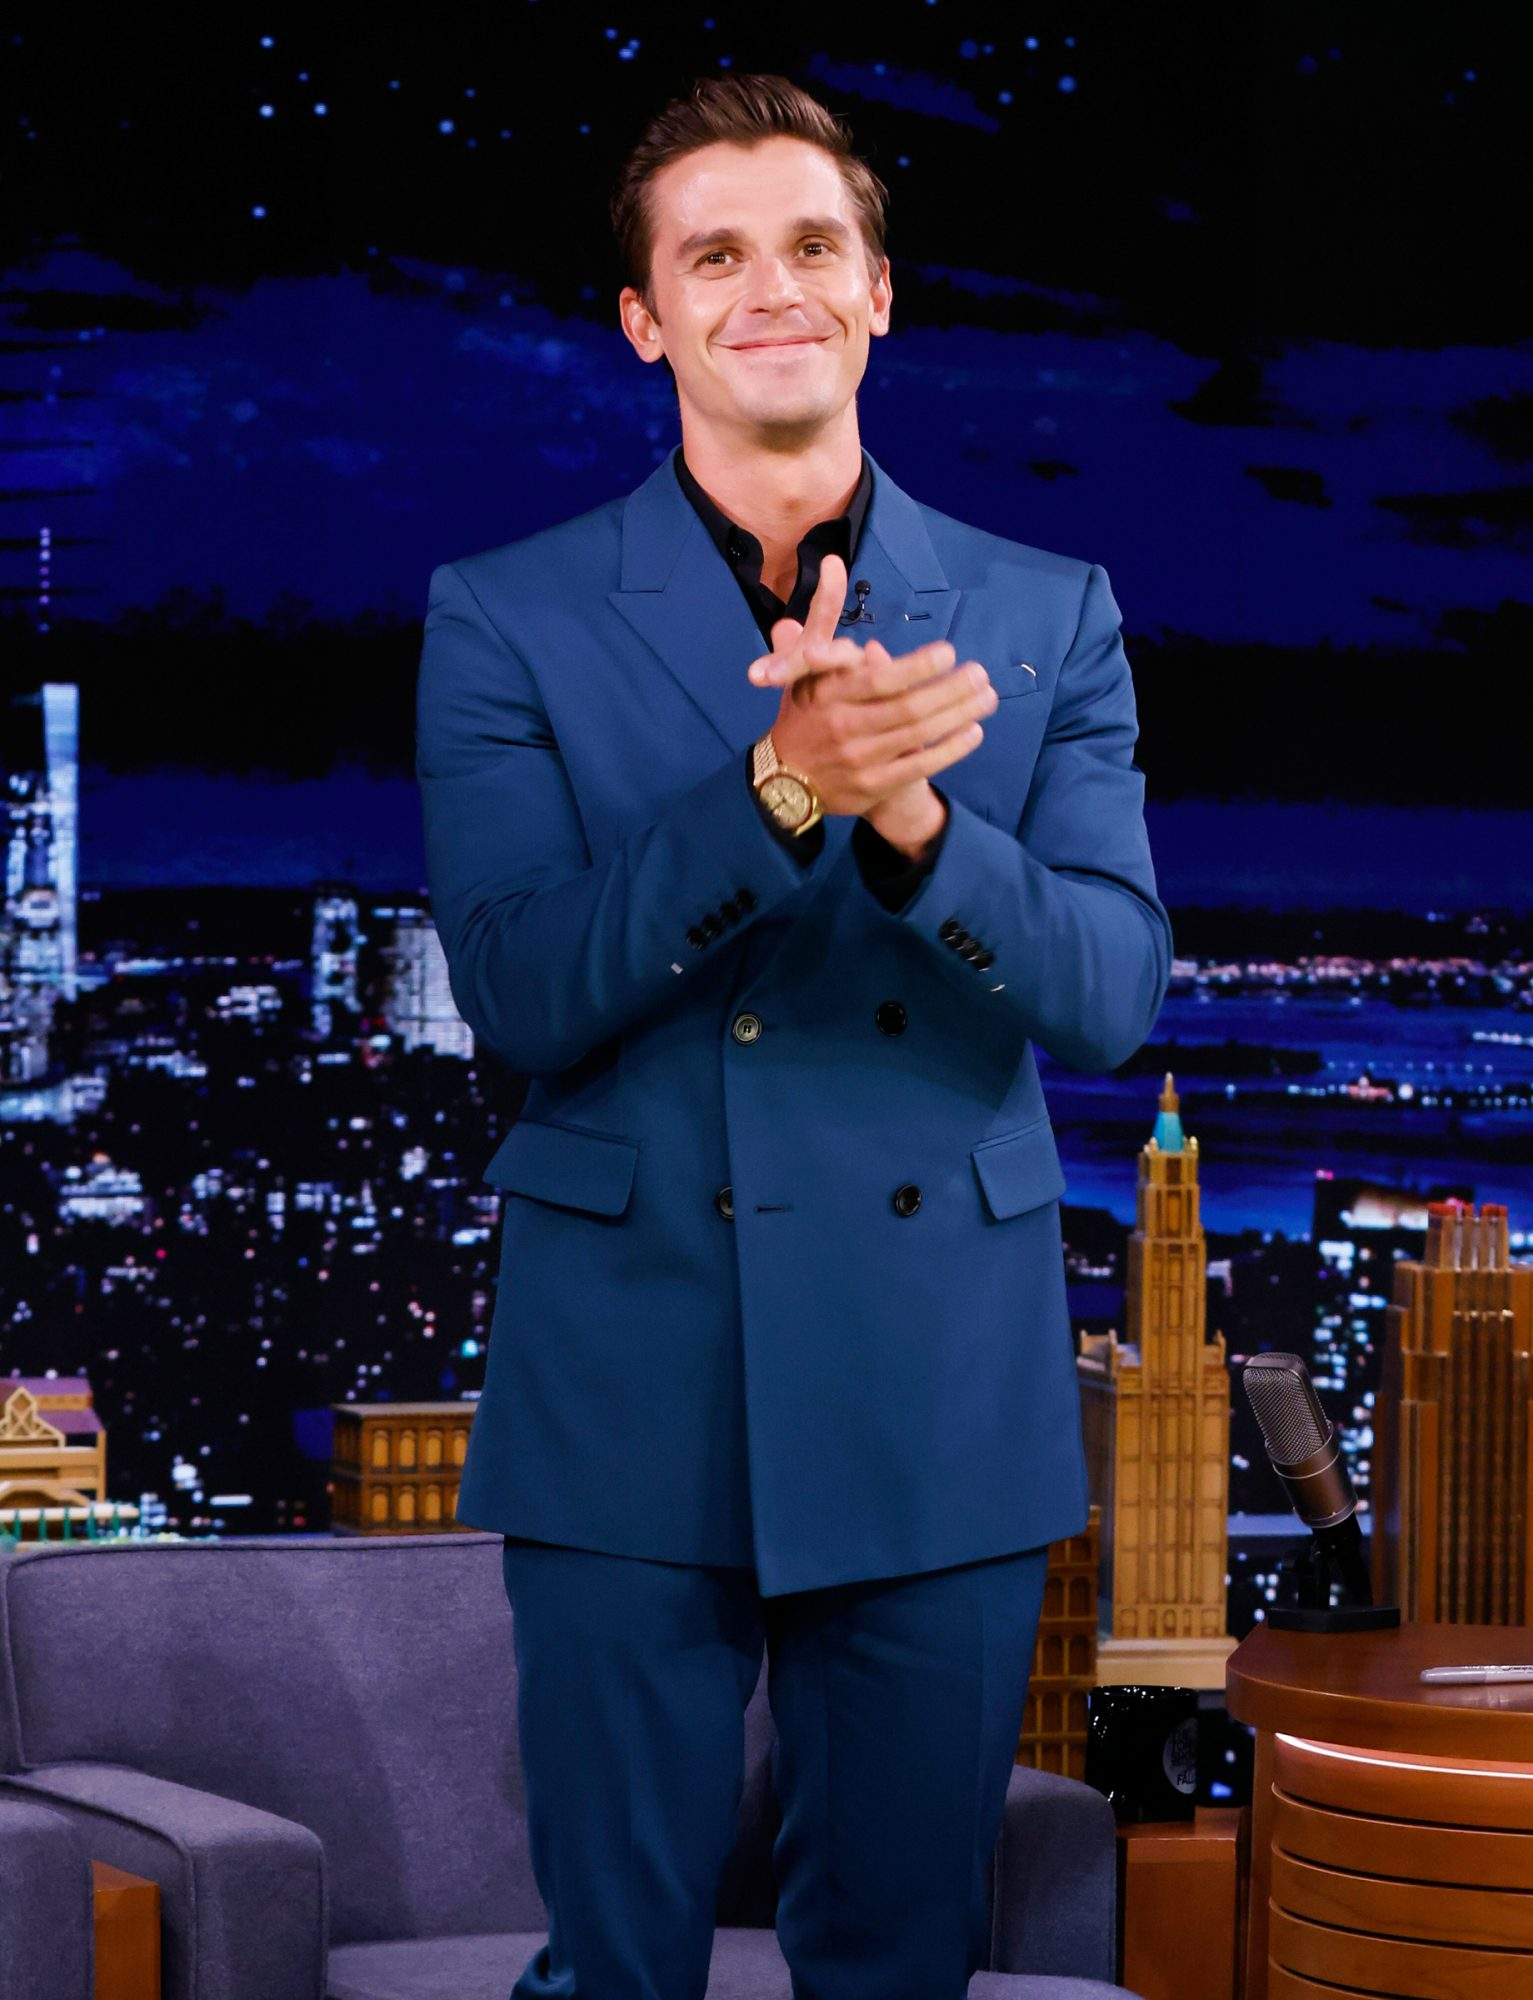 THE TONIGHT SHOW STARRING JIMMY FALLON -- Episode 1514 -- Pictured: Television personality Antoni Porowski arrives on Tuesday, September 14, 2021